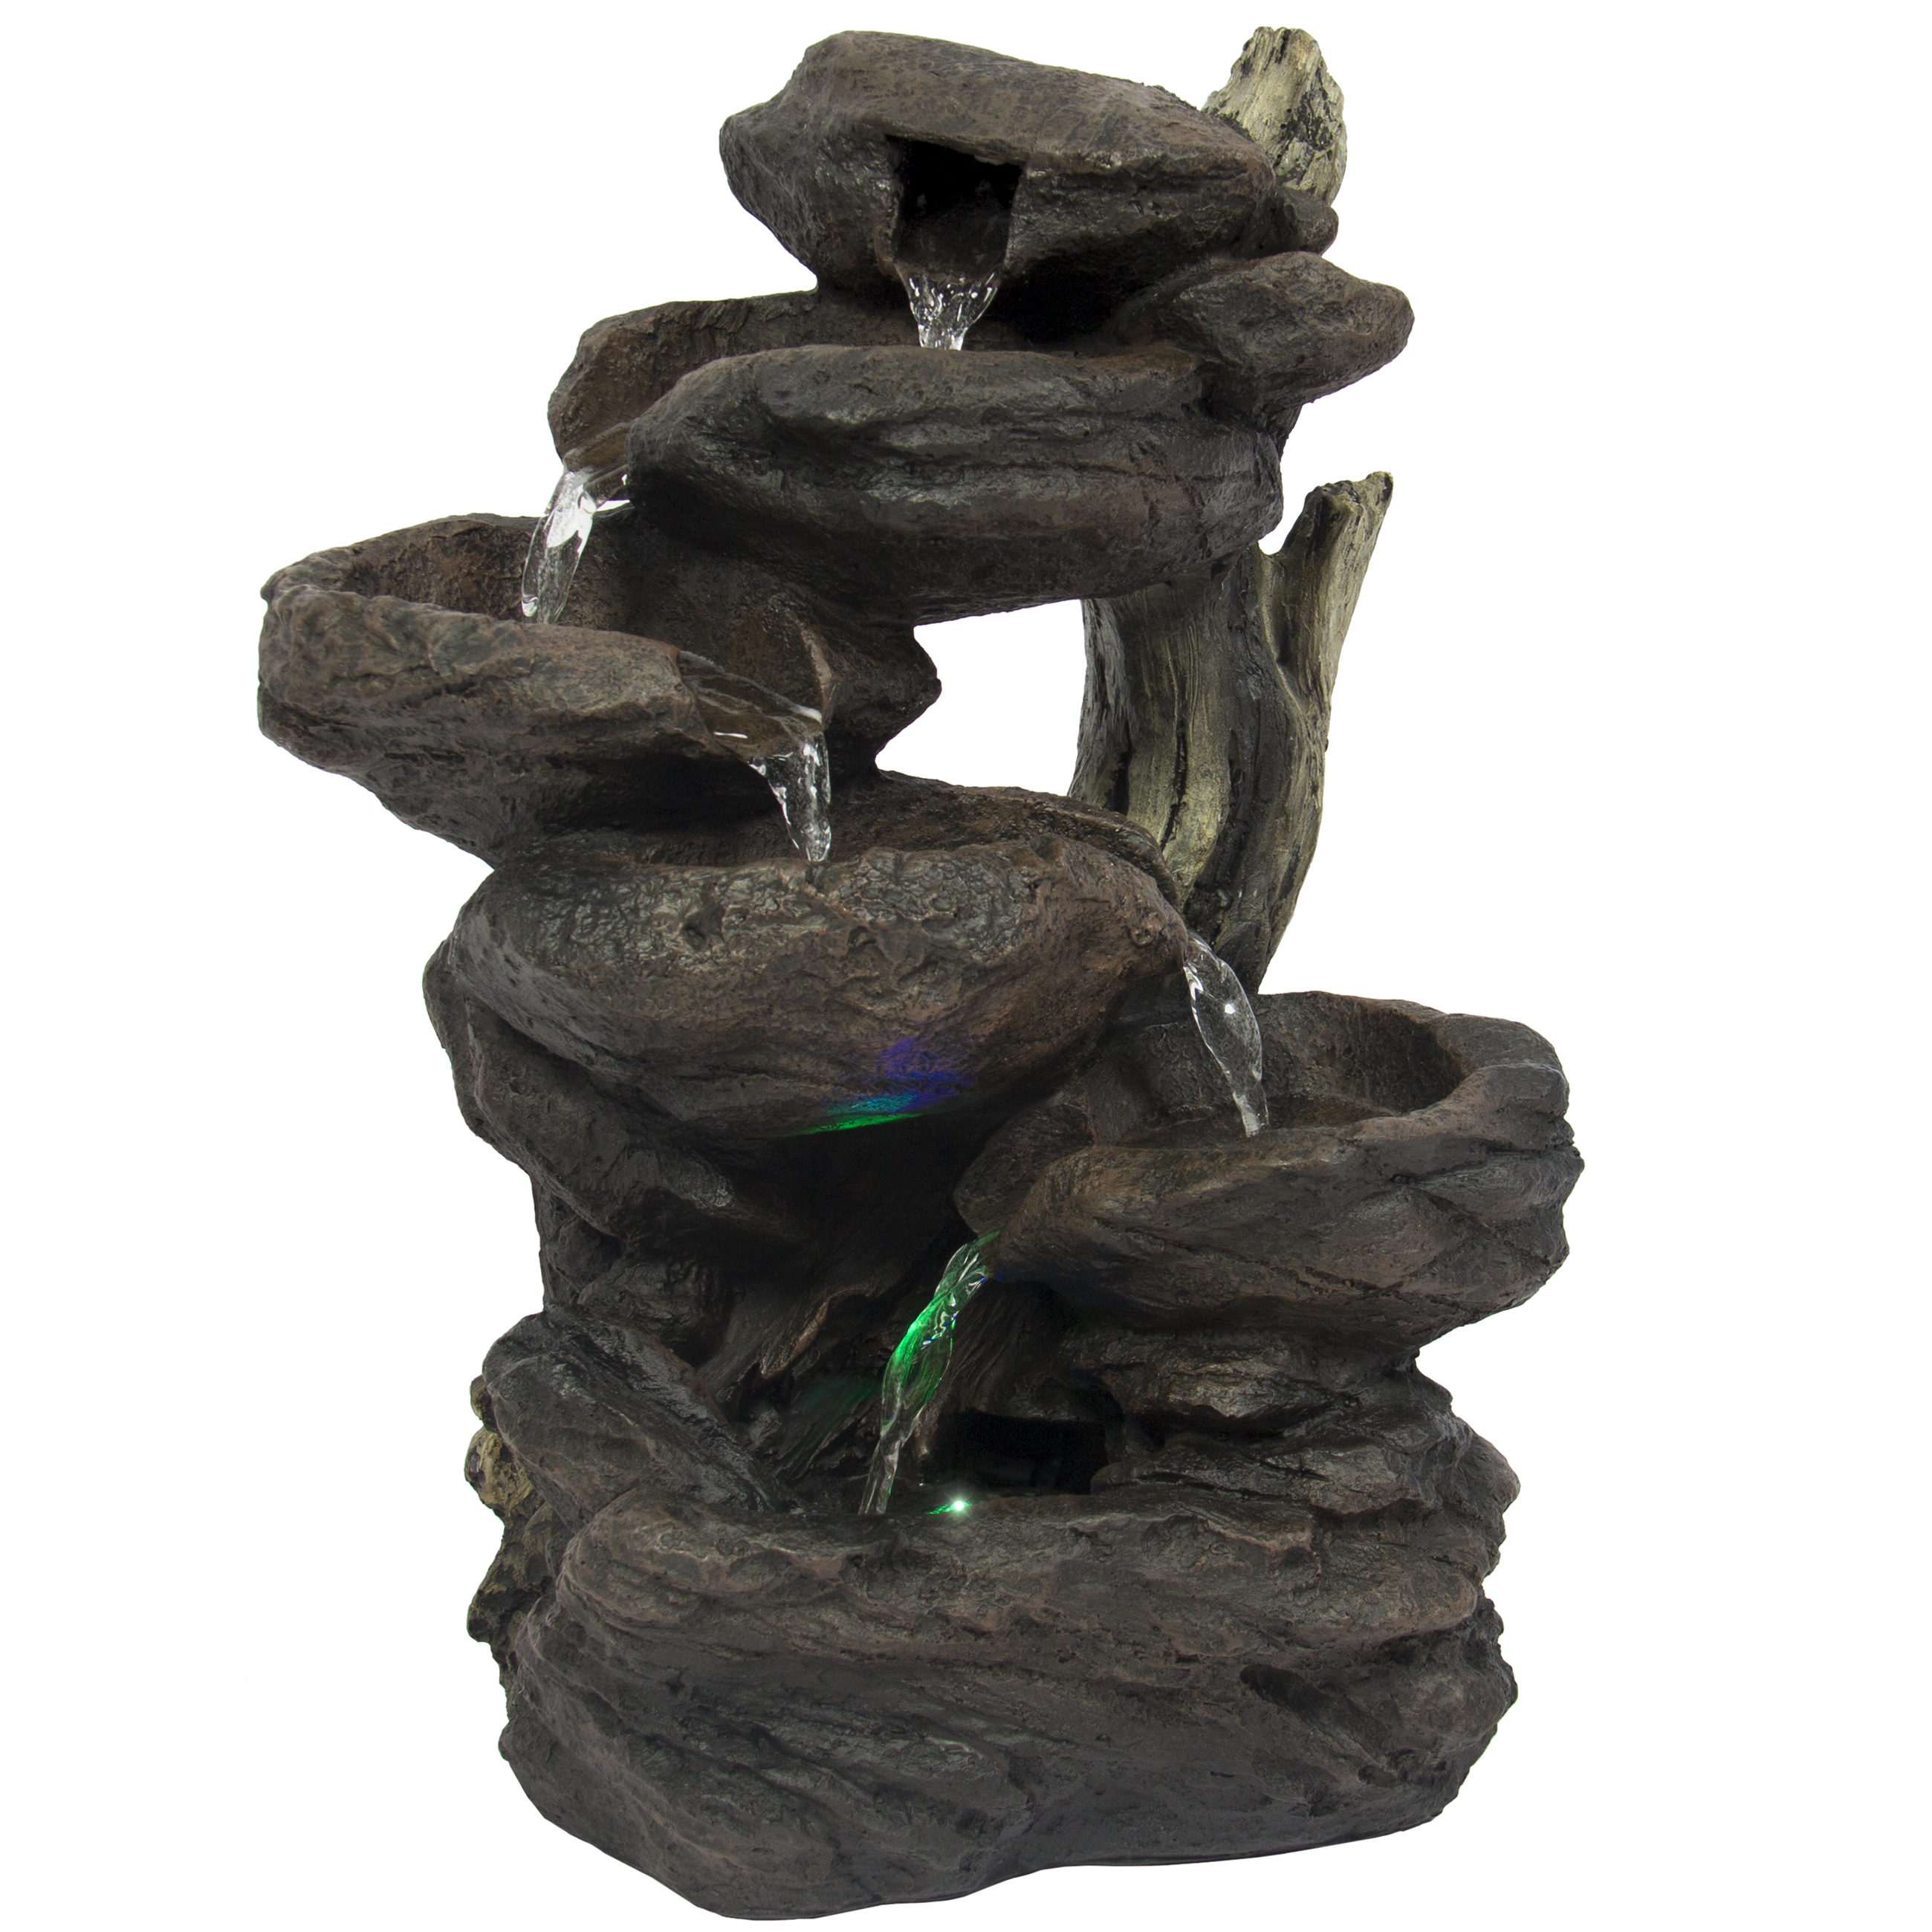 Best Choice Products Home Indoor 6-Tier Tabletop Fountain Waterfall With Multicolor LED Lights by Best Choice Products